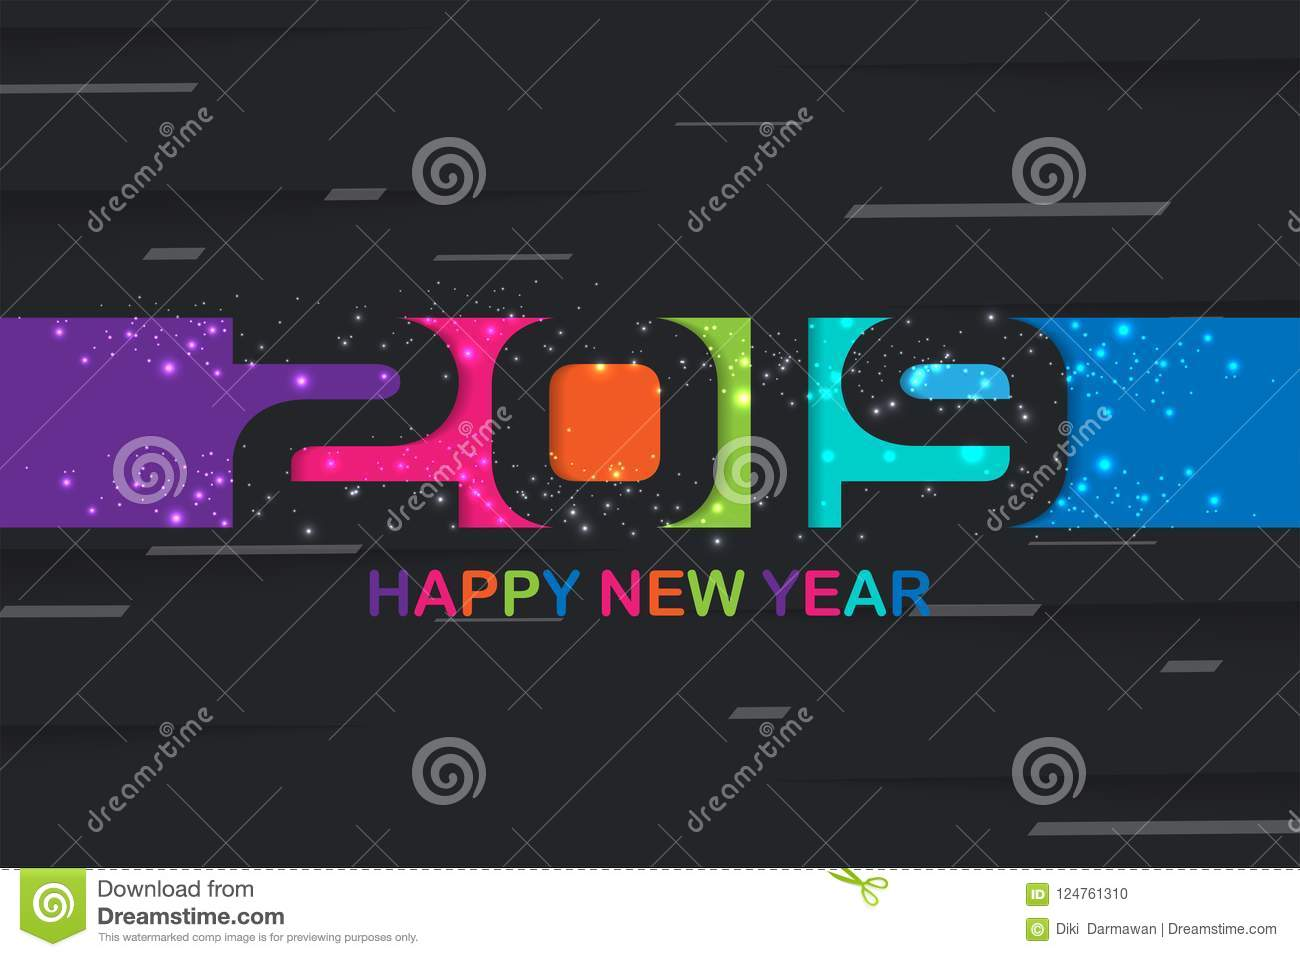 2019 Happy New Year colorful background creative design for your greetings card, flyers, posters, brochure, banners, calendar